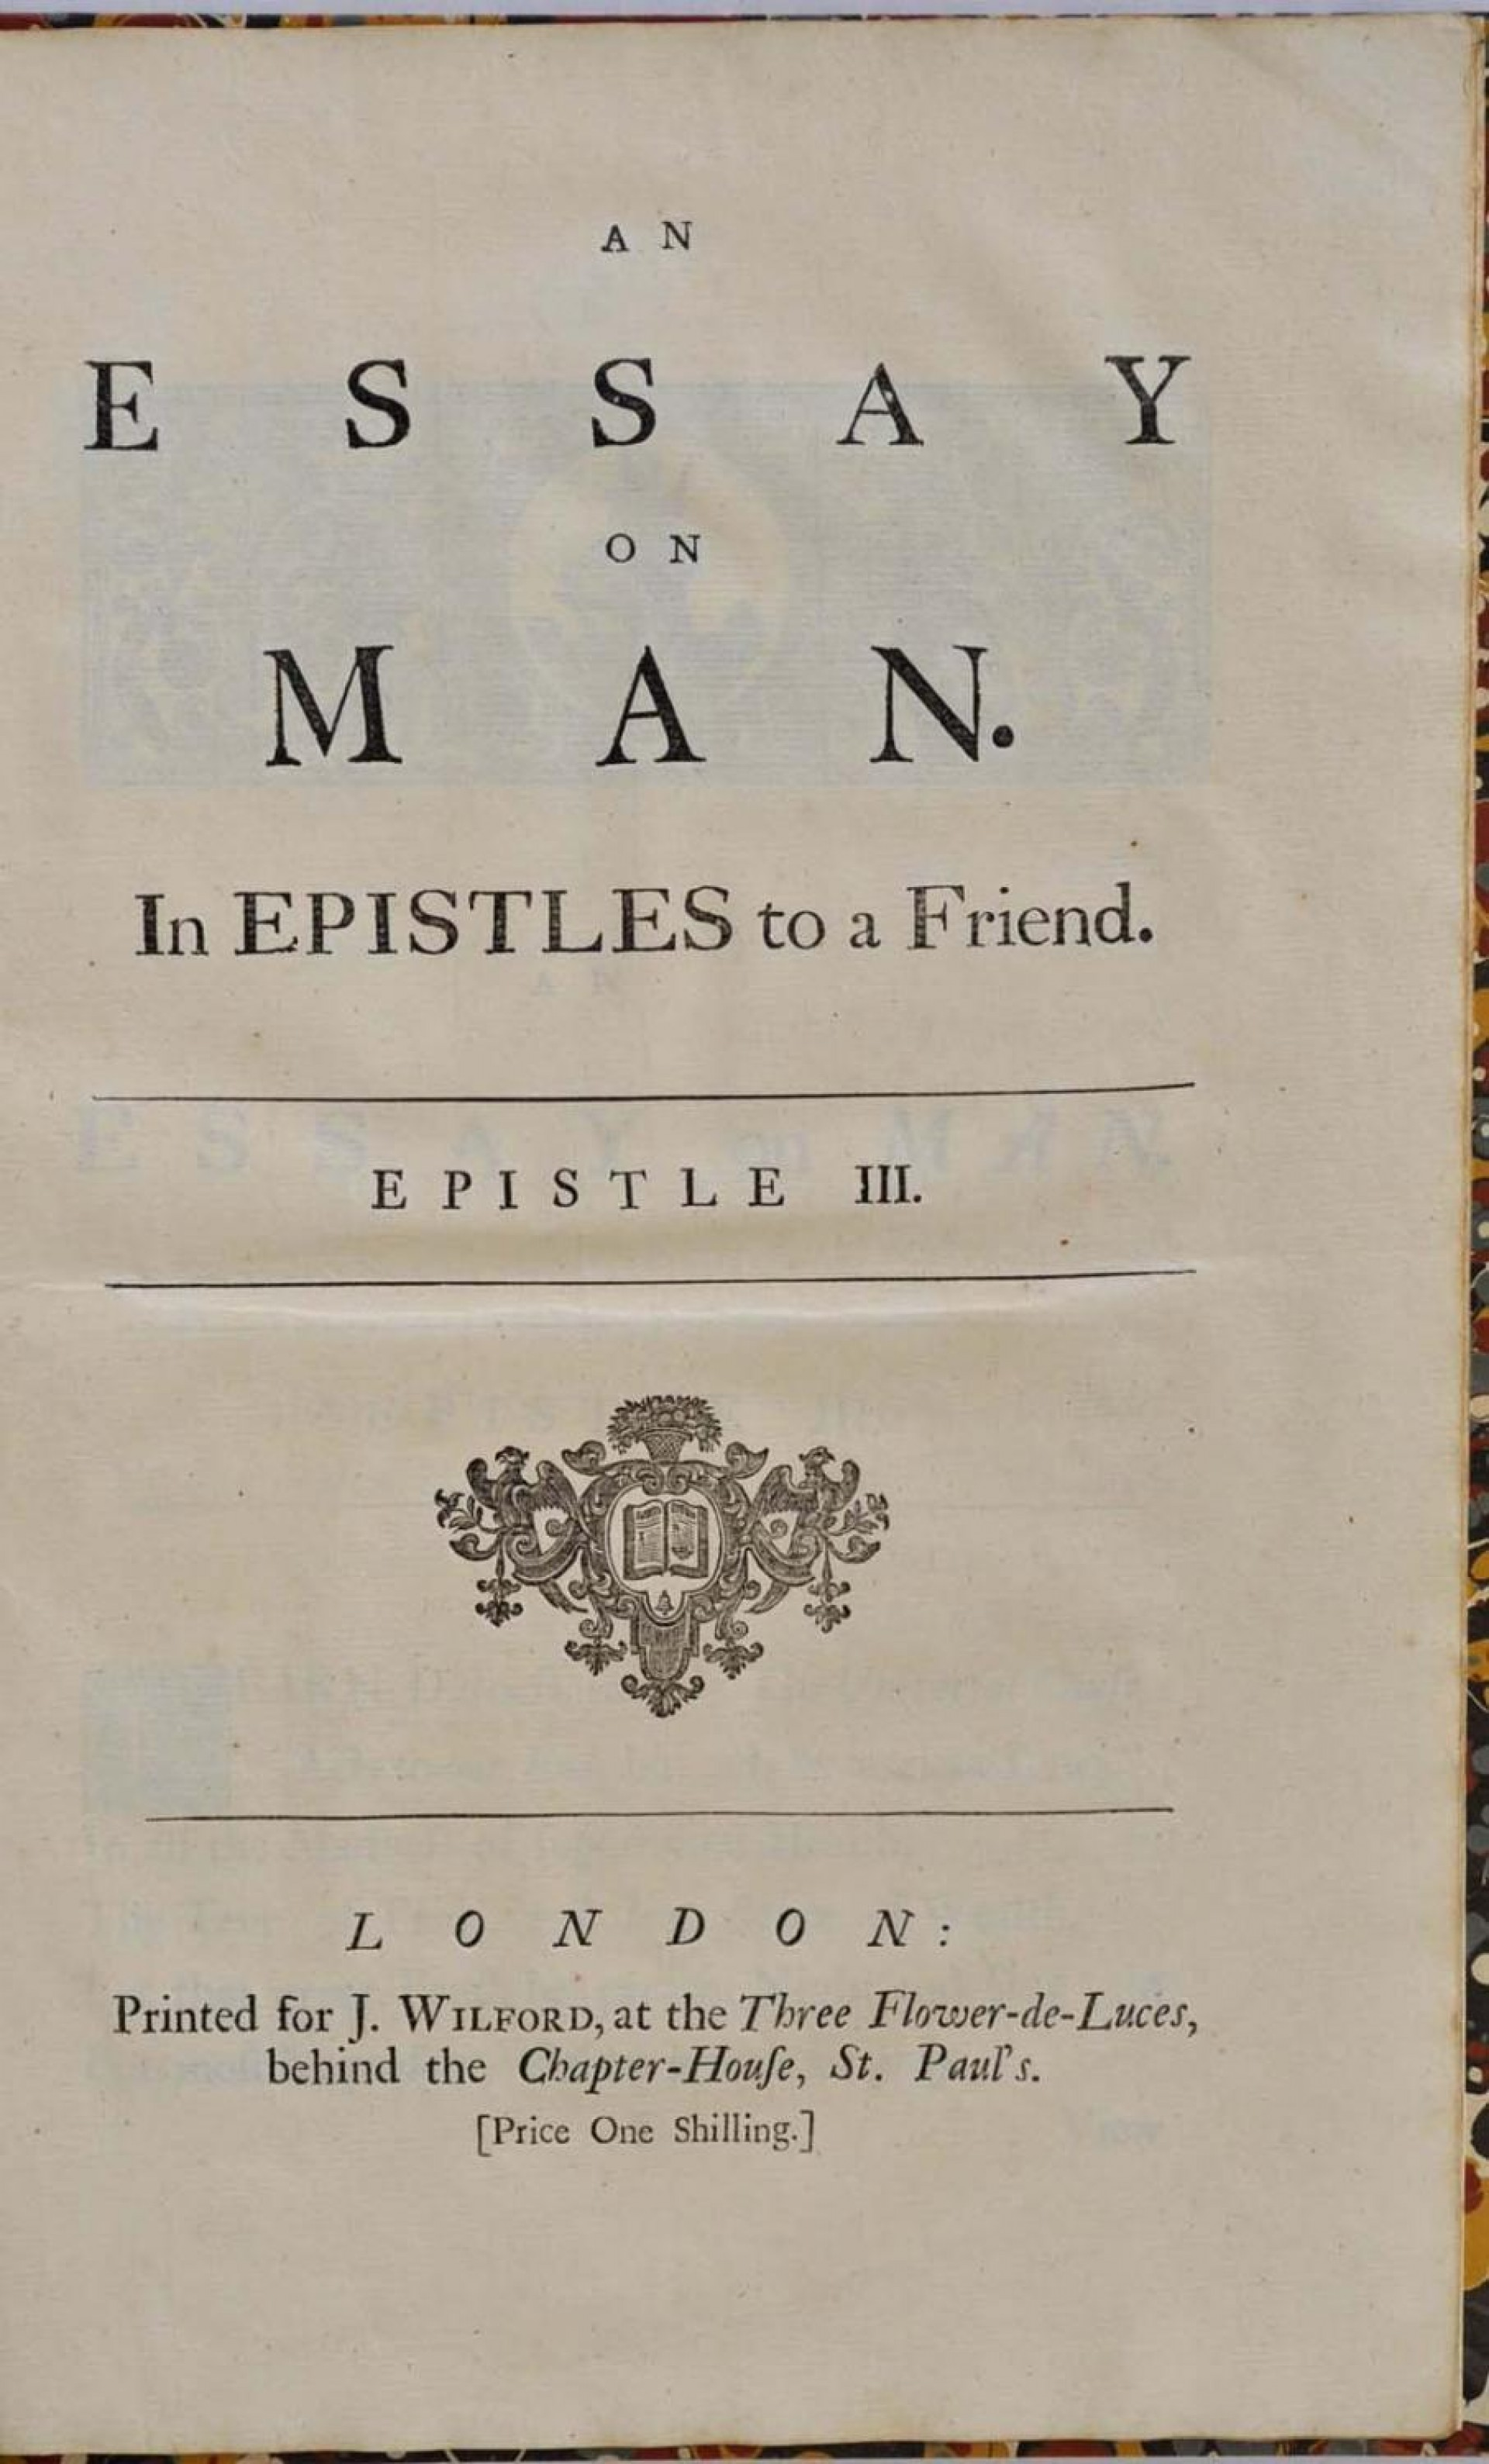 005 1357222764 4 Essay On Man Stirring By Alexander Pope Analysis Pdf Critical Manners Reveal Character 1920